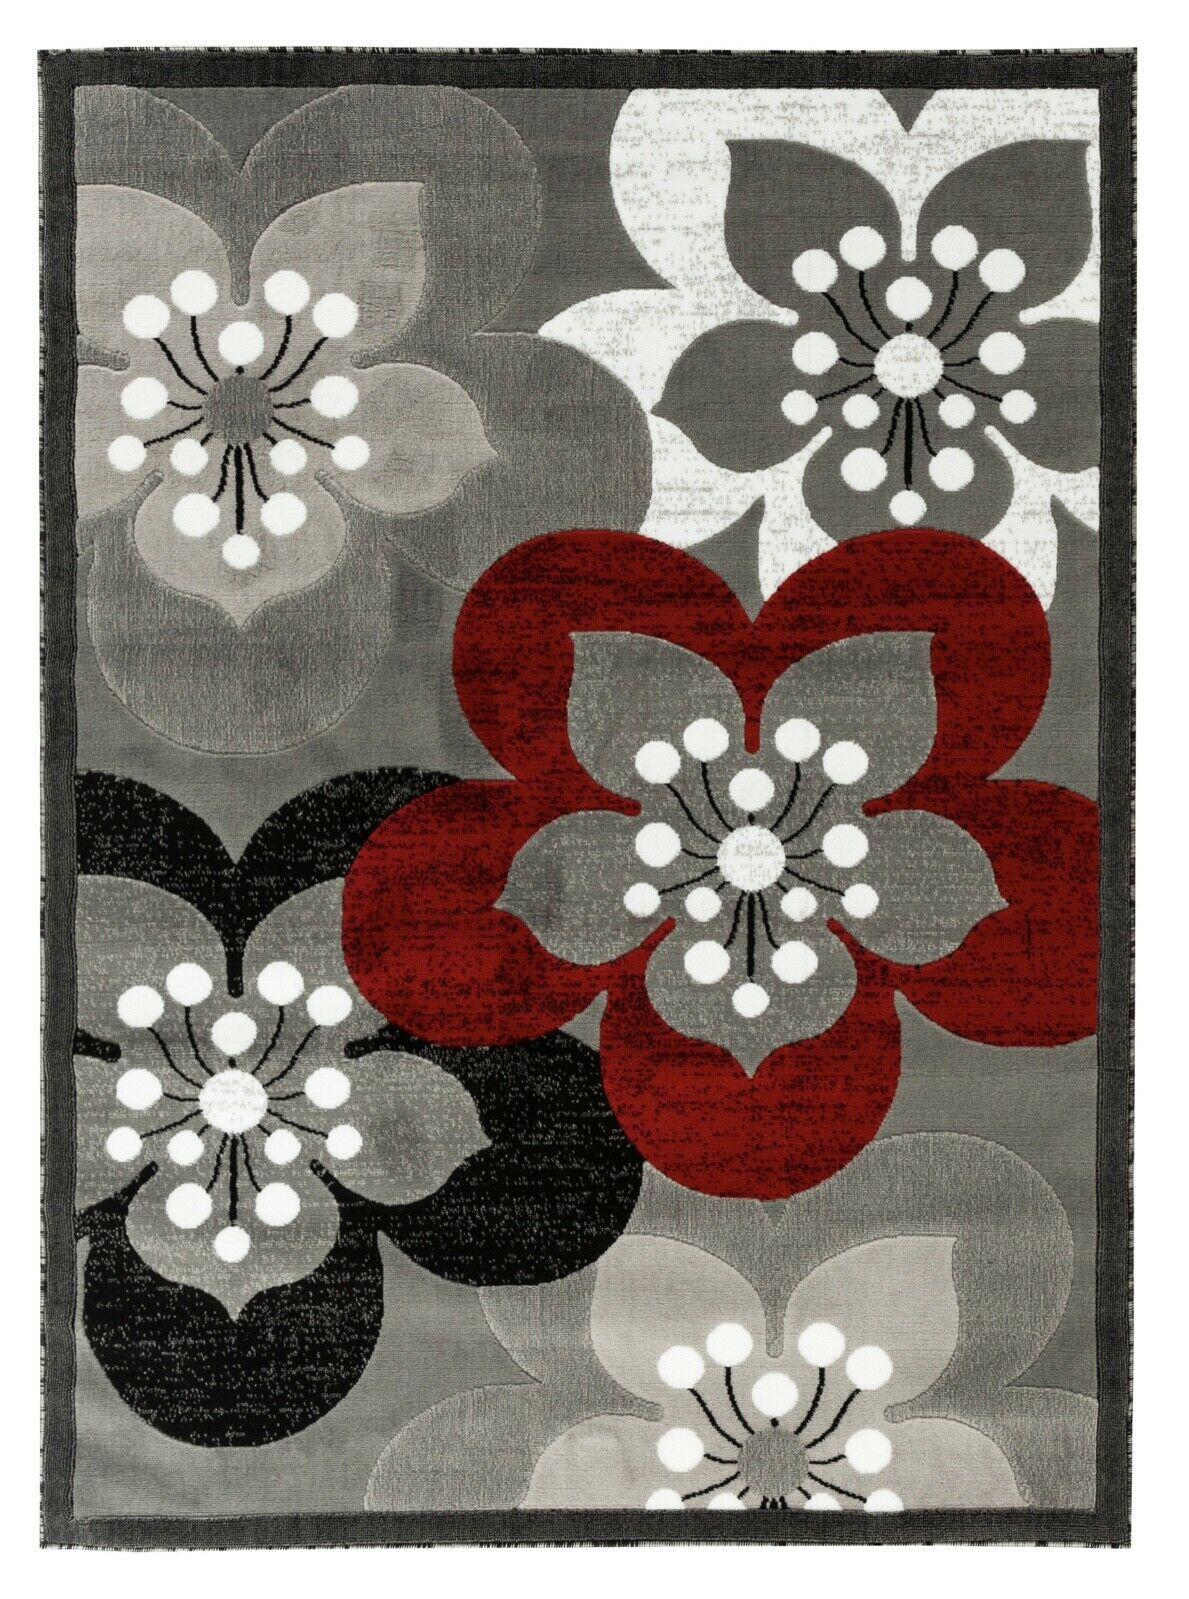 Area rug Nwprt #82 Floral design gray soft pile size 2x3 4x5